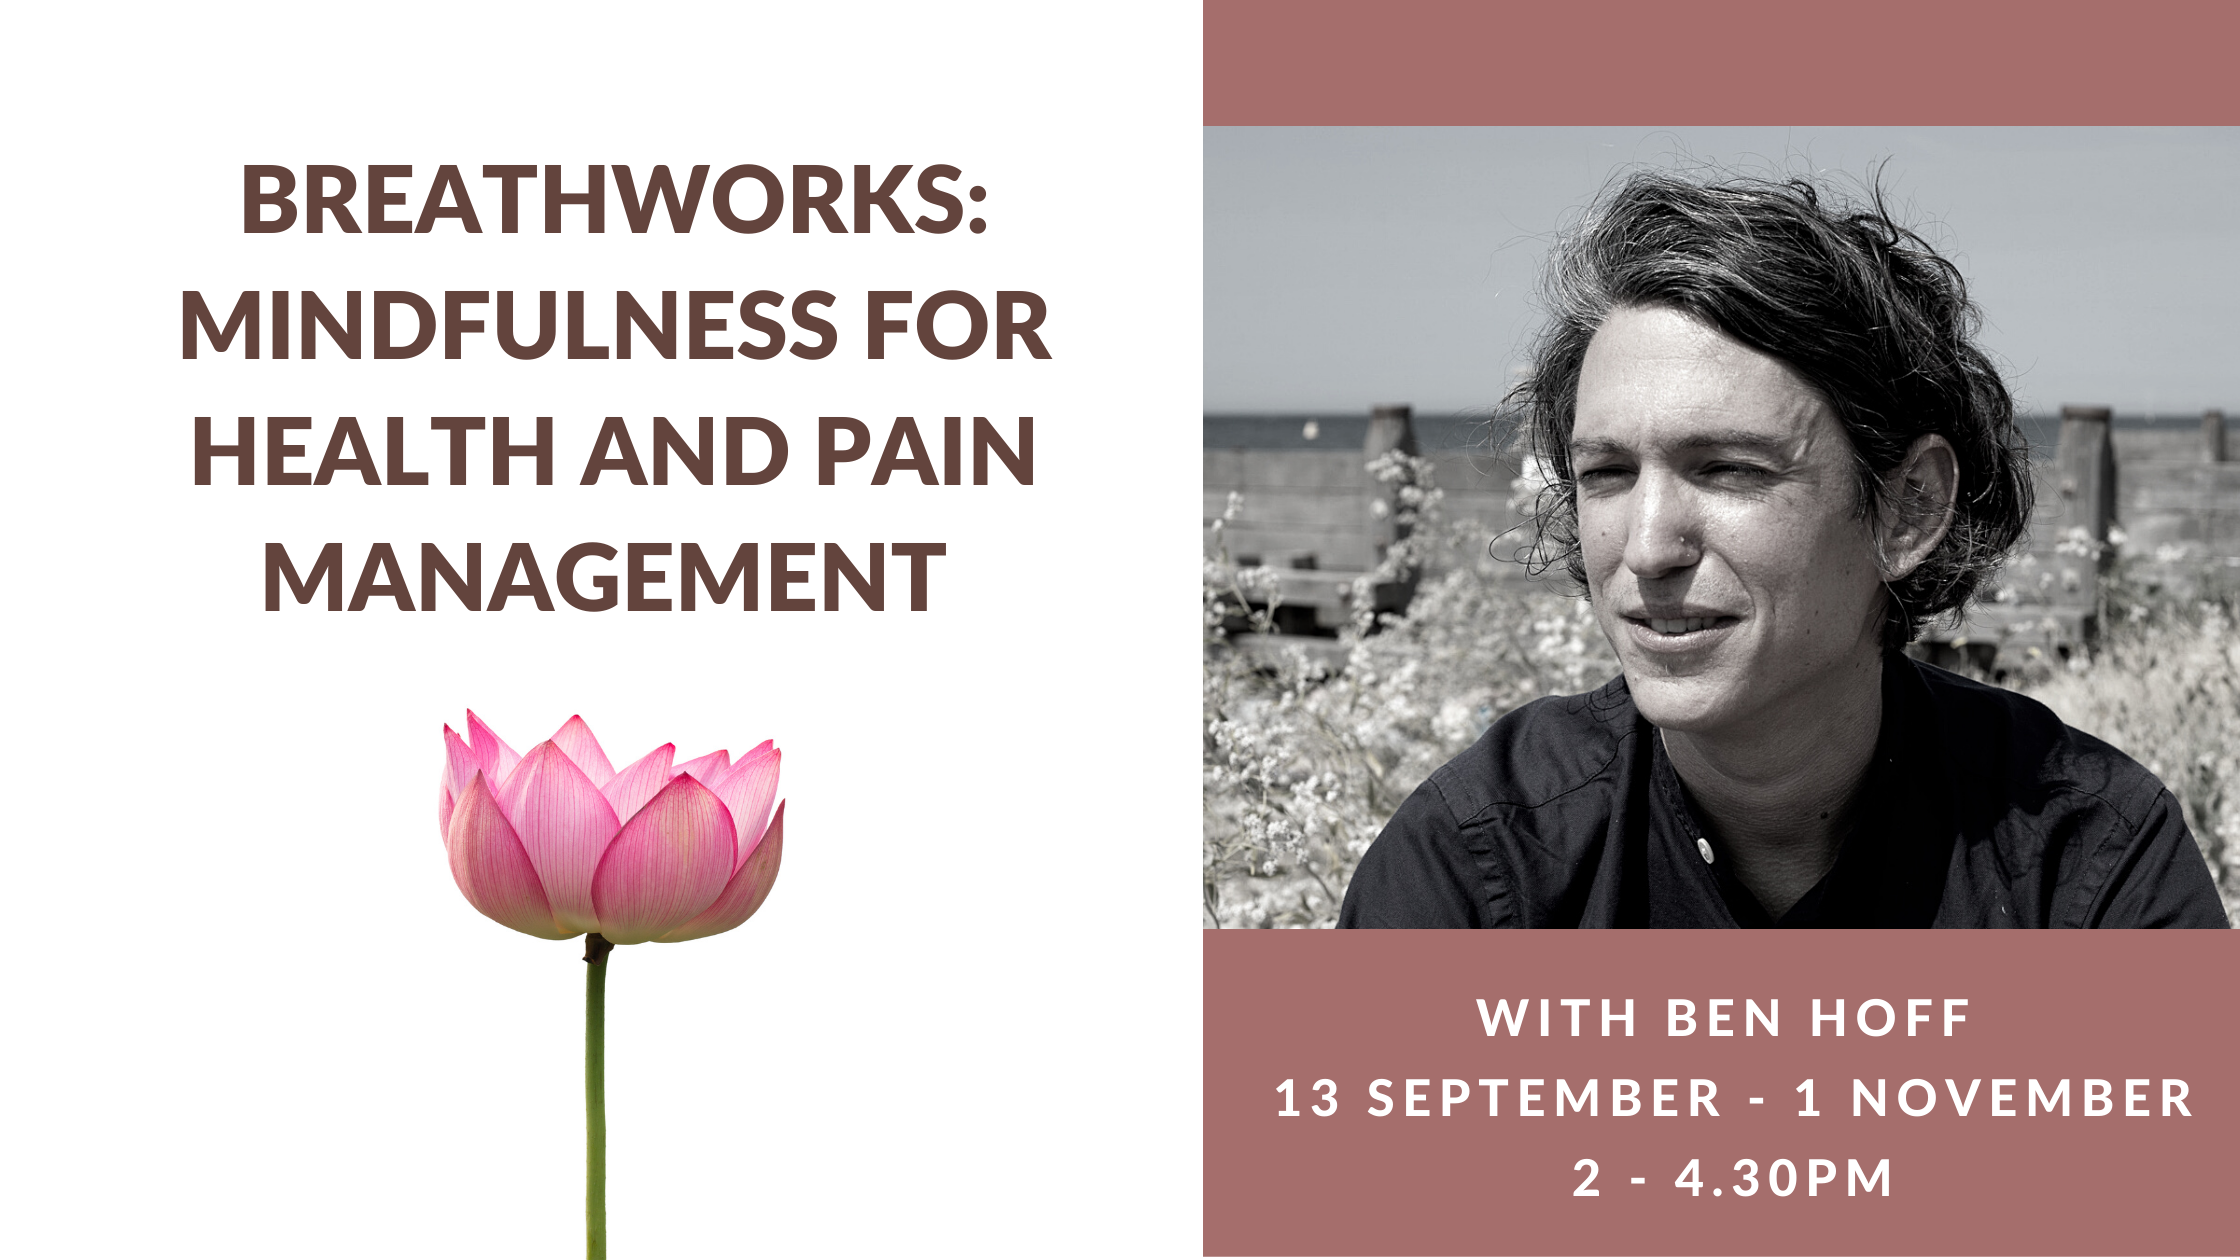 Mindfulness for Health and Pain Management